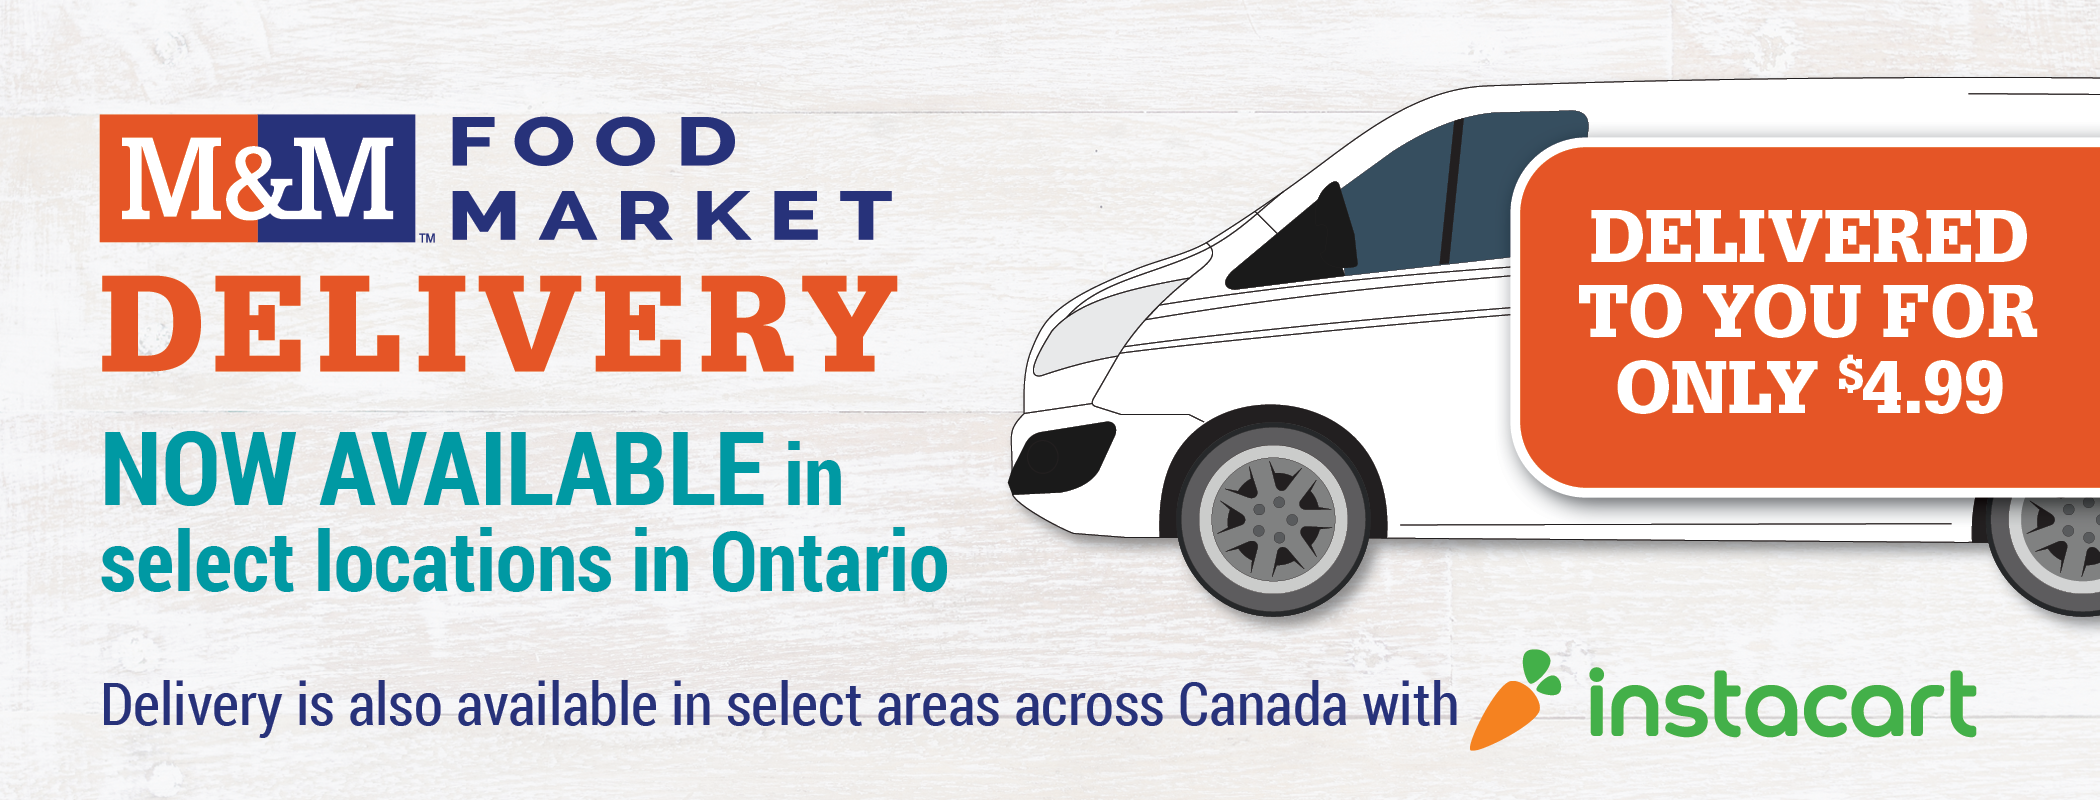 M&M Food Market Delivery now available in select locations in Ontario